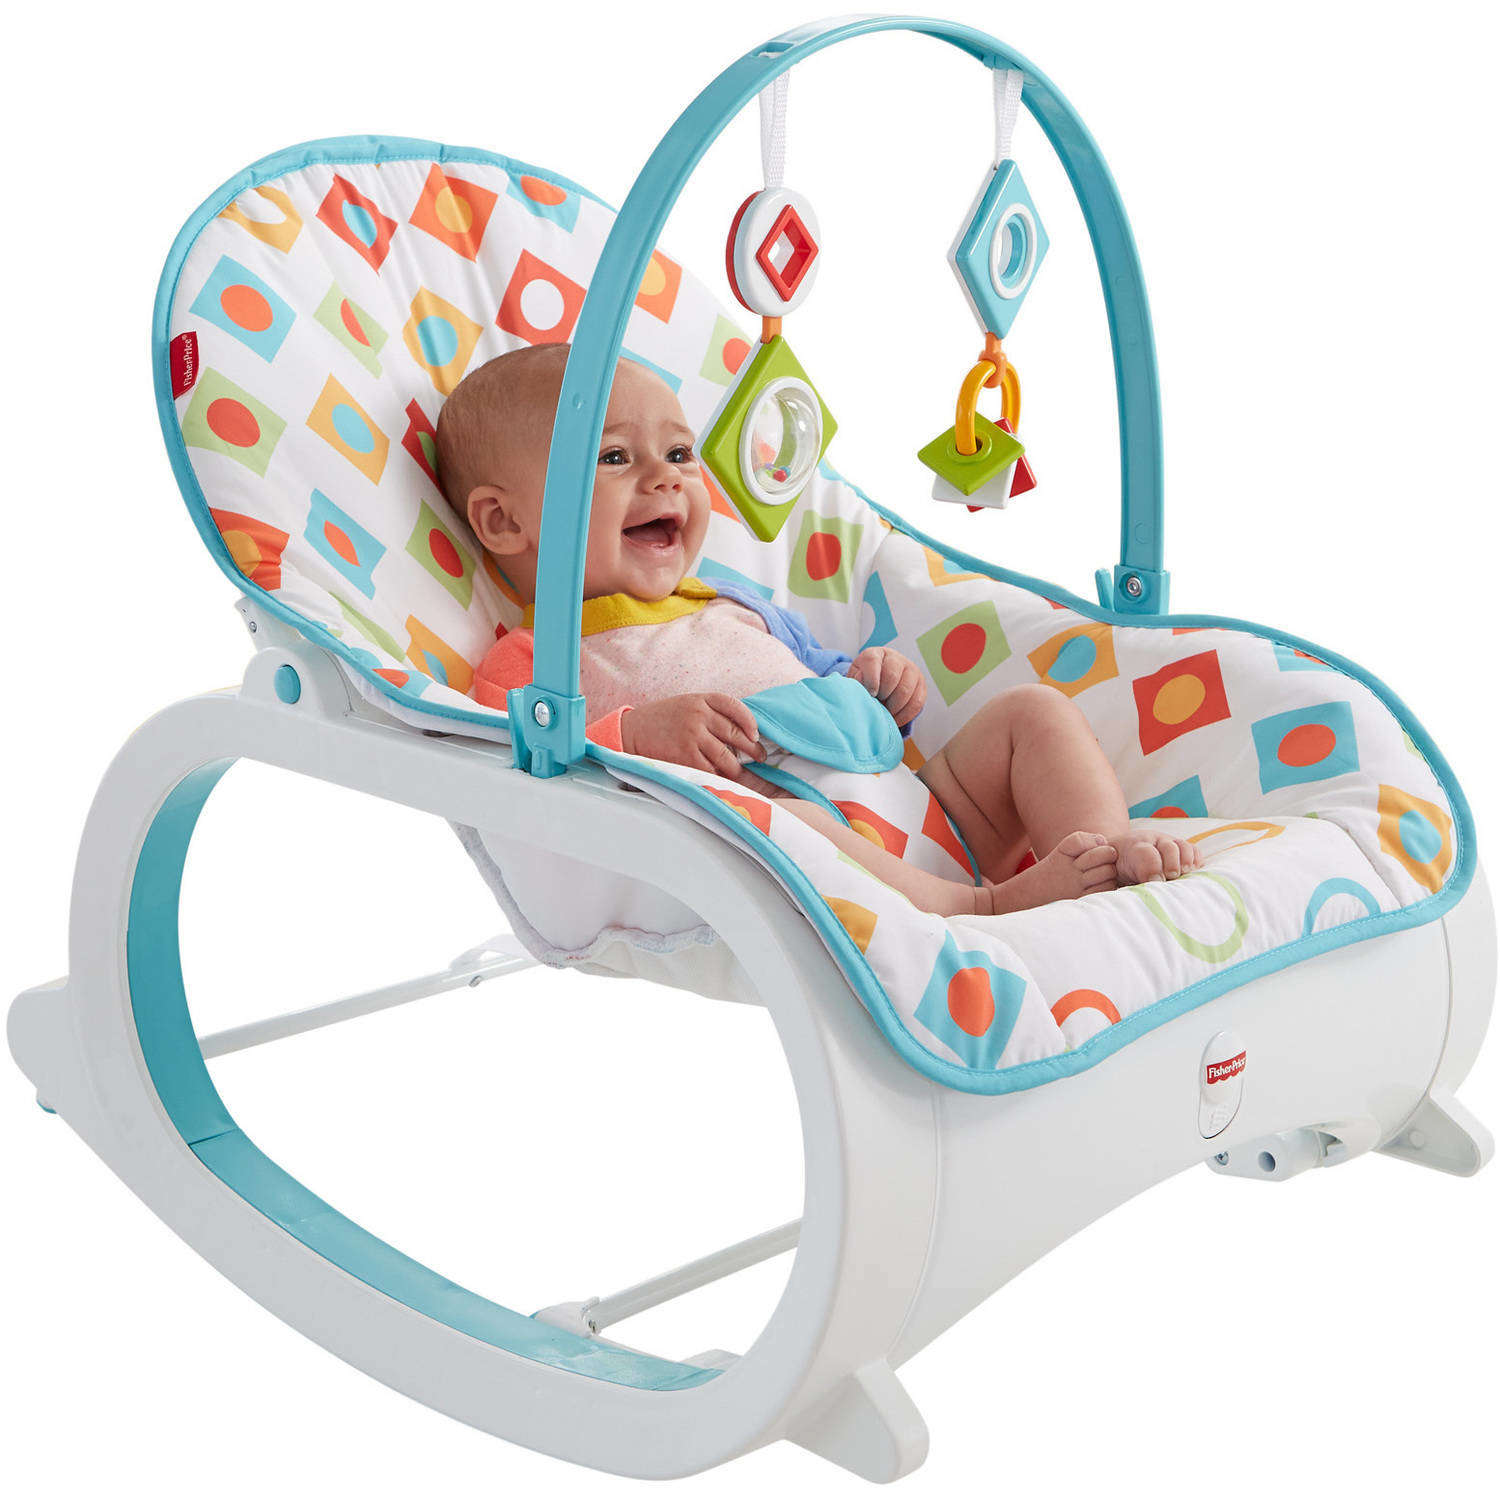 Details About Infant To Toddler Rocker Bouncer Seat Baby Chair Sleeper Swing Toy Portable